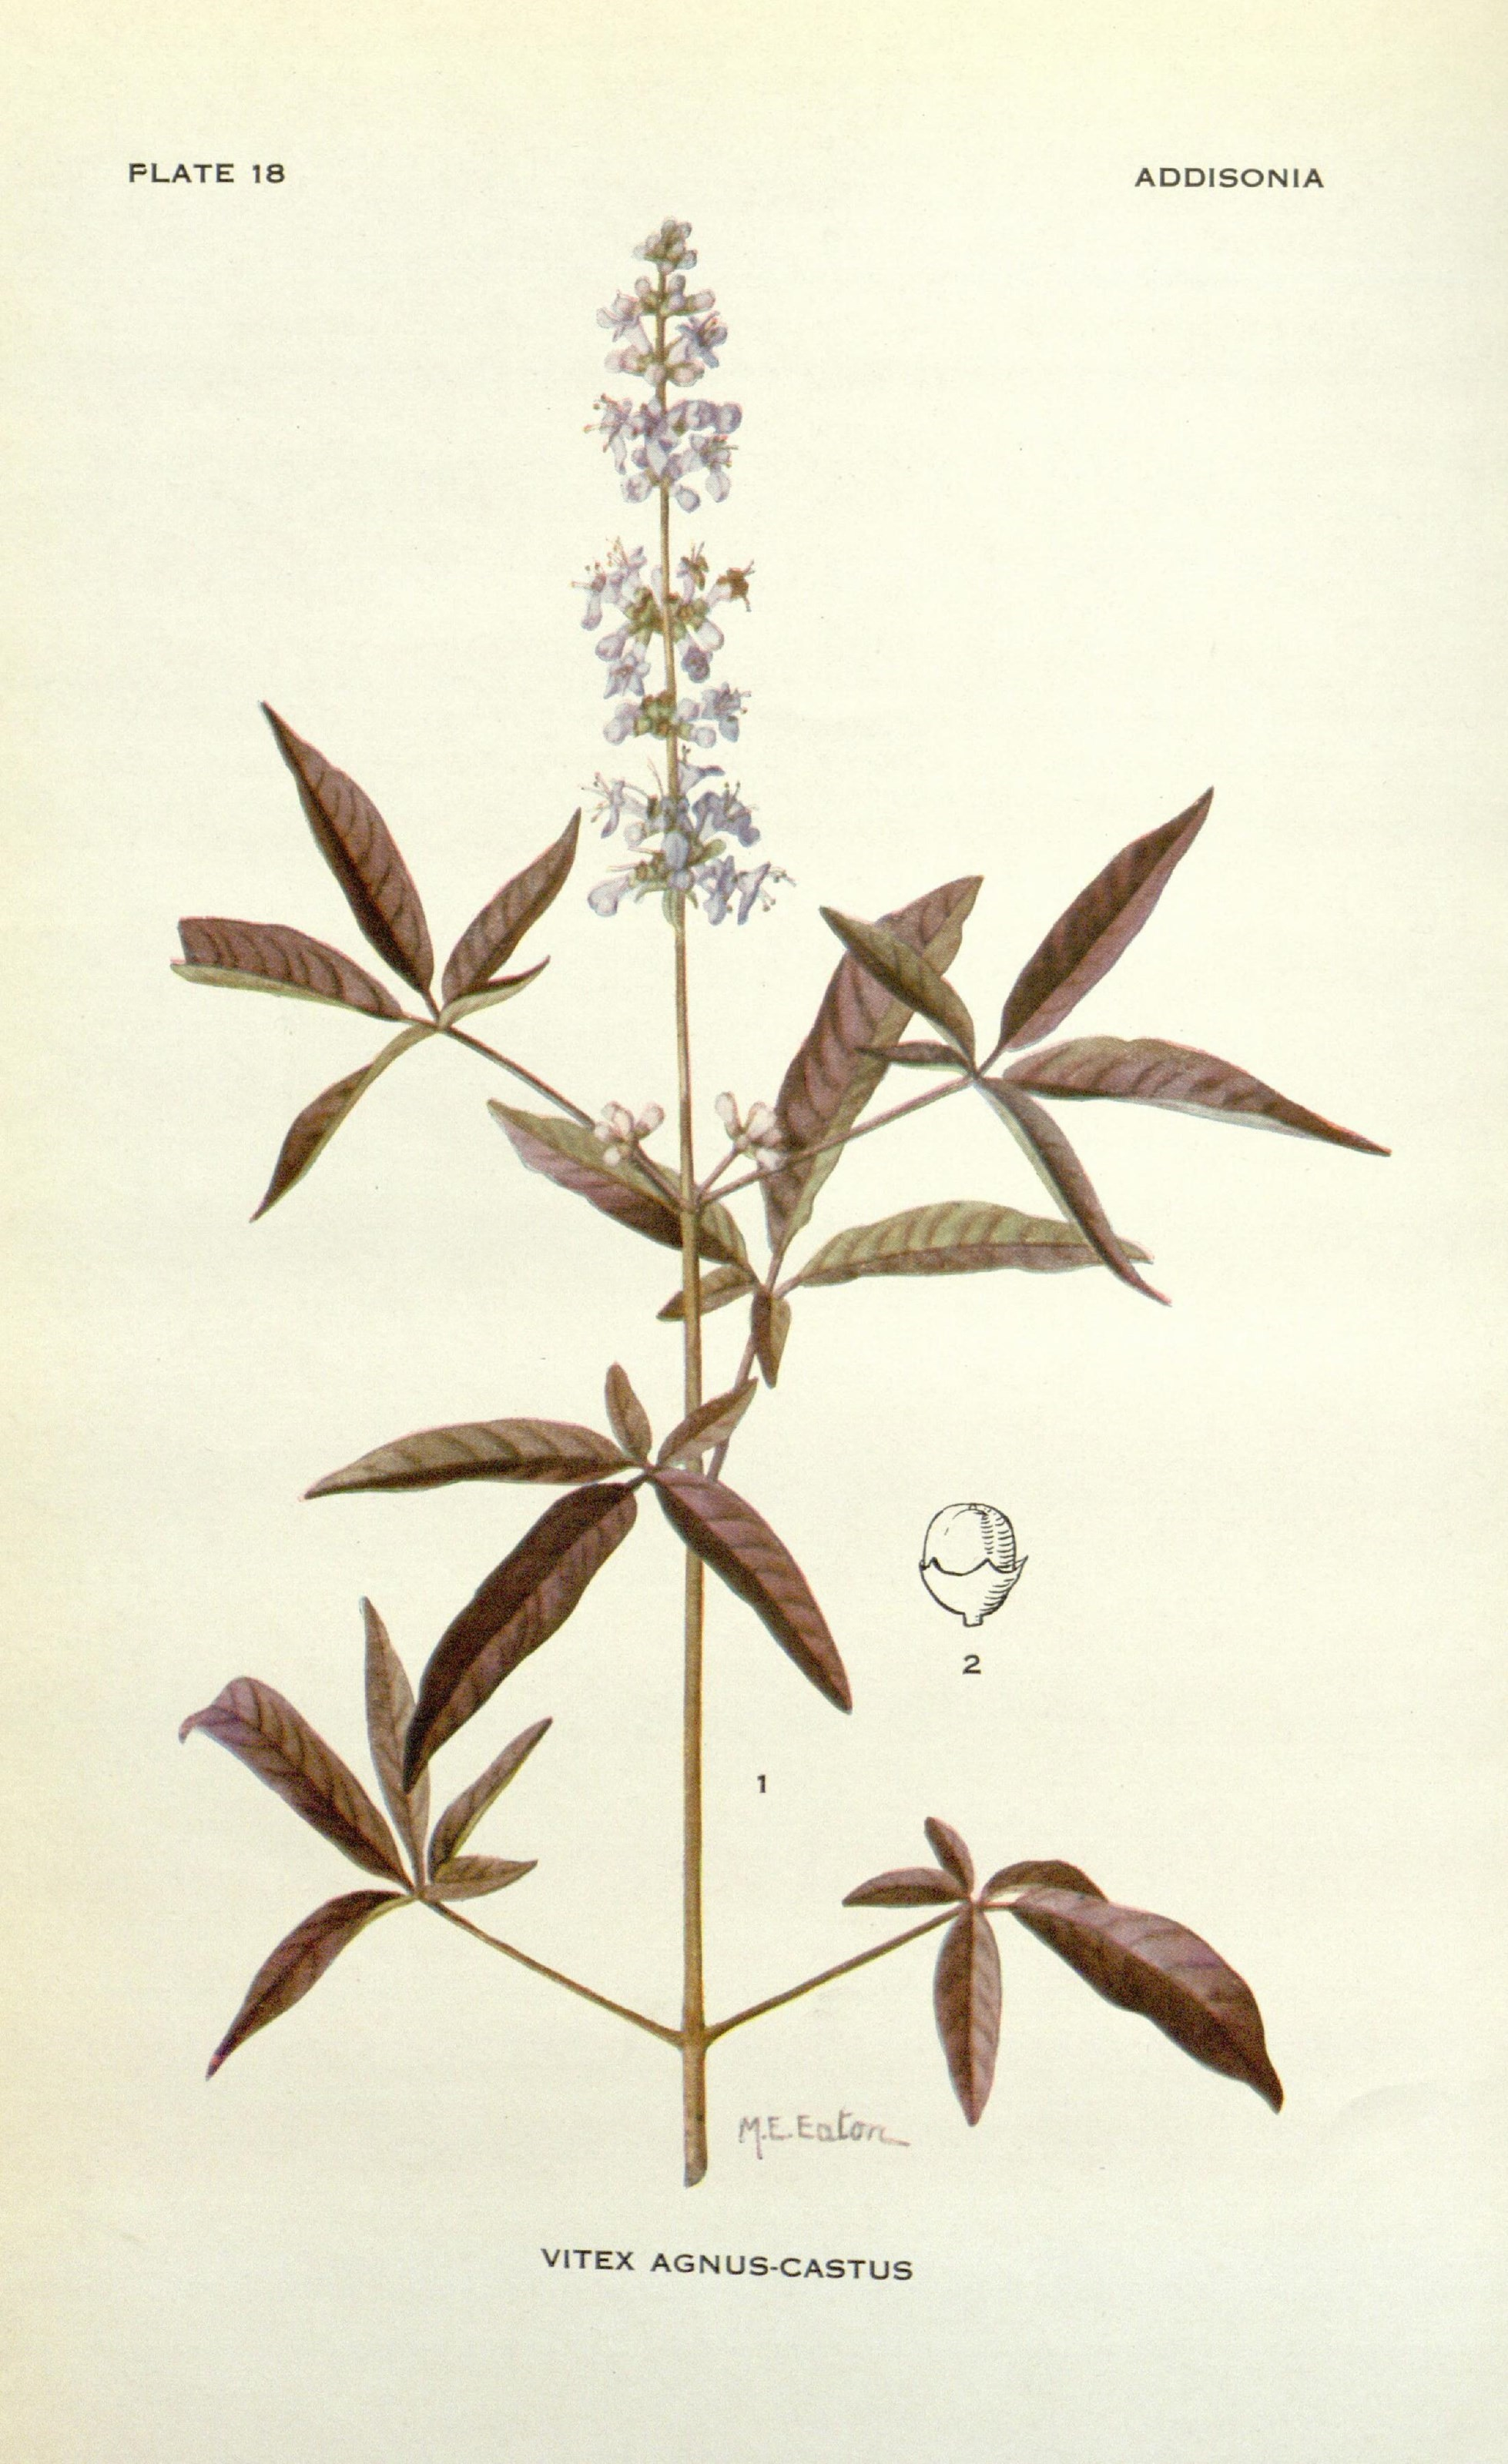 Image of chaste tree